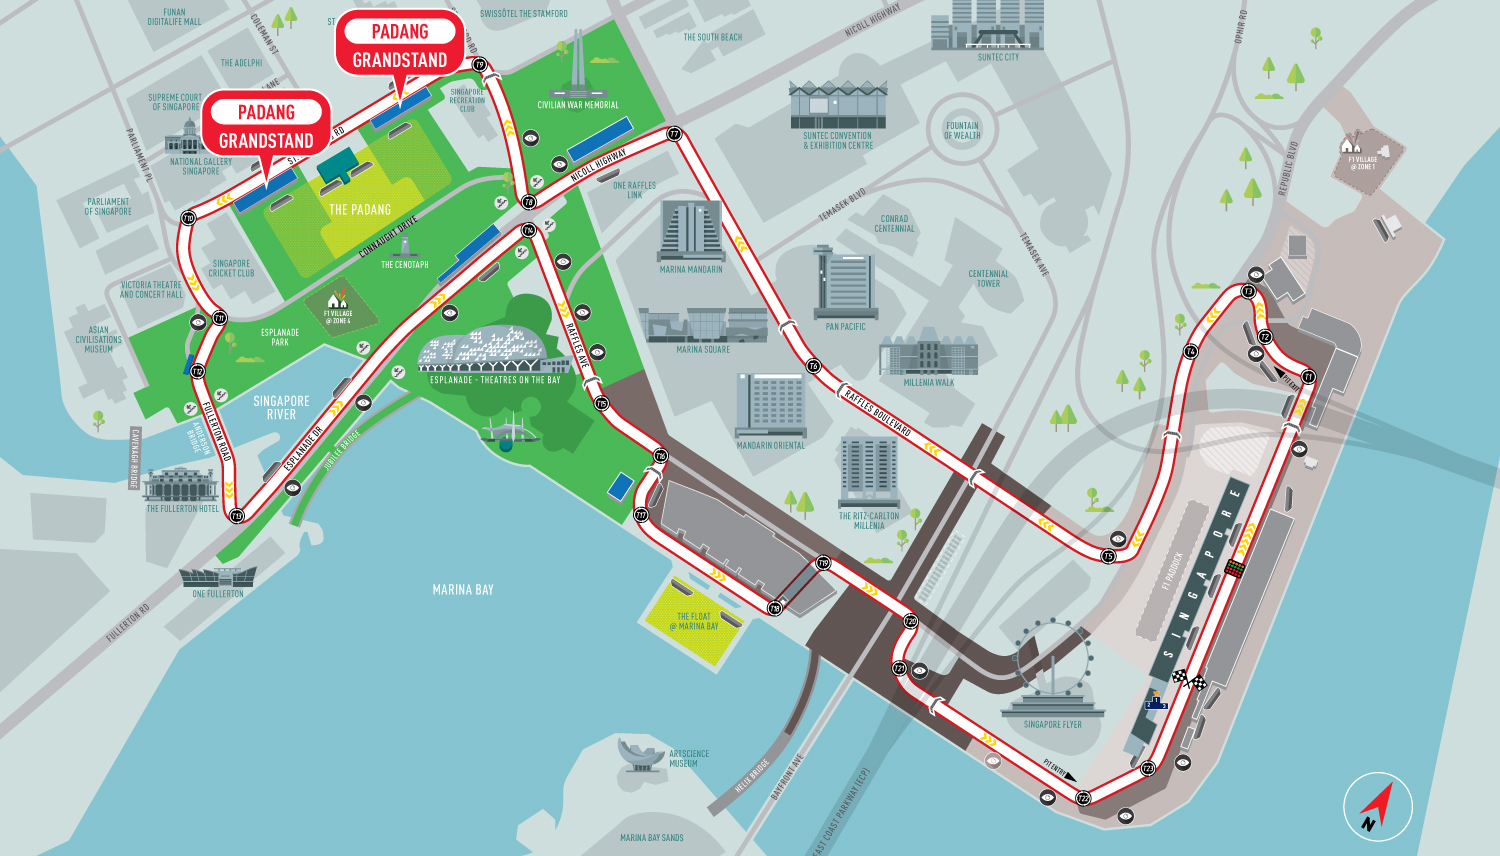 Singapore Grand Prix Tickets - padang grandstand map